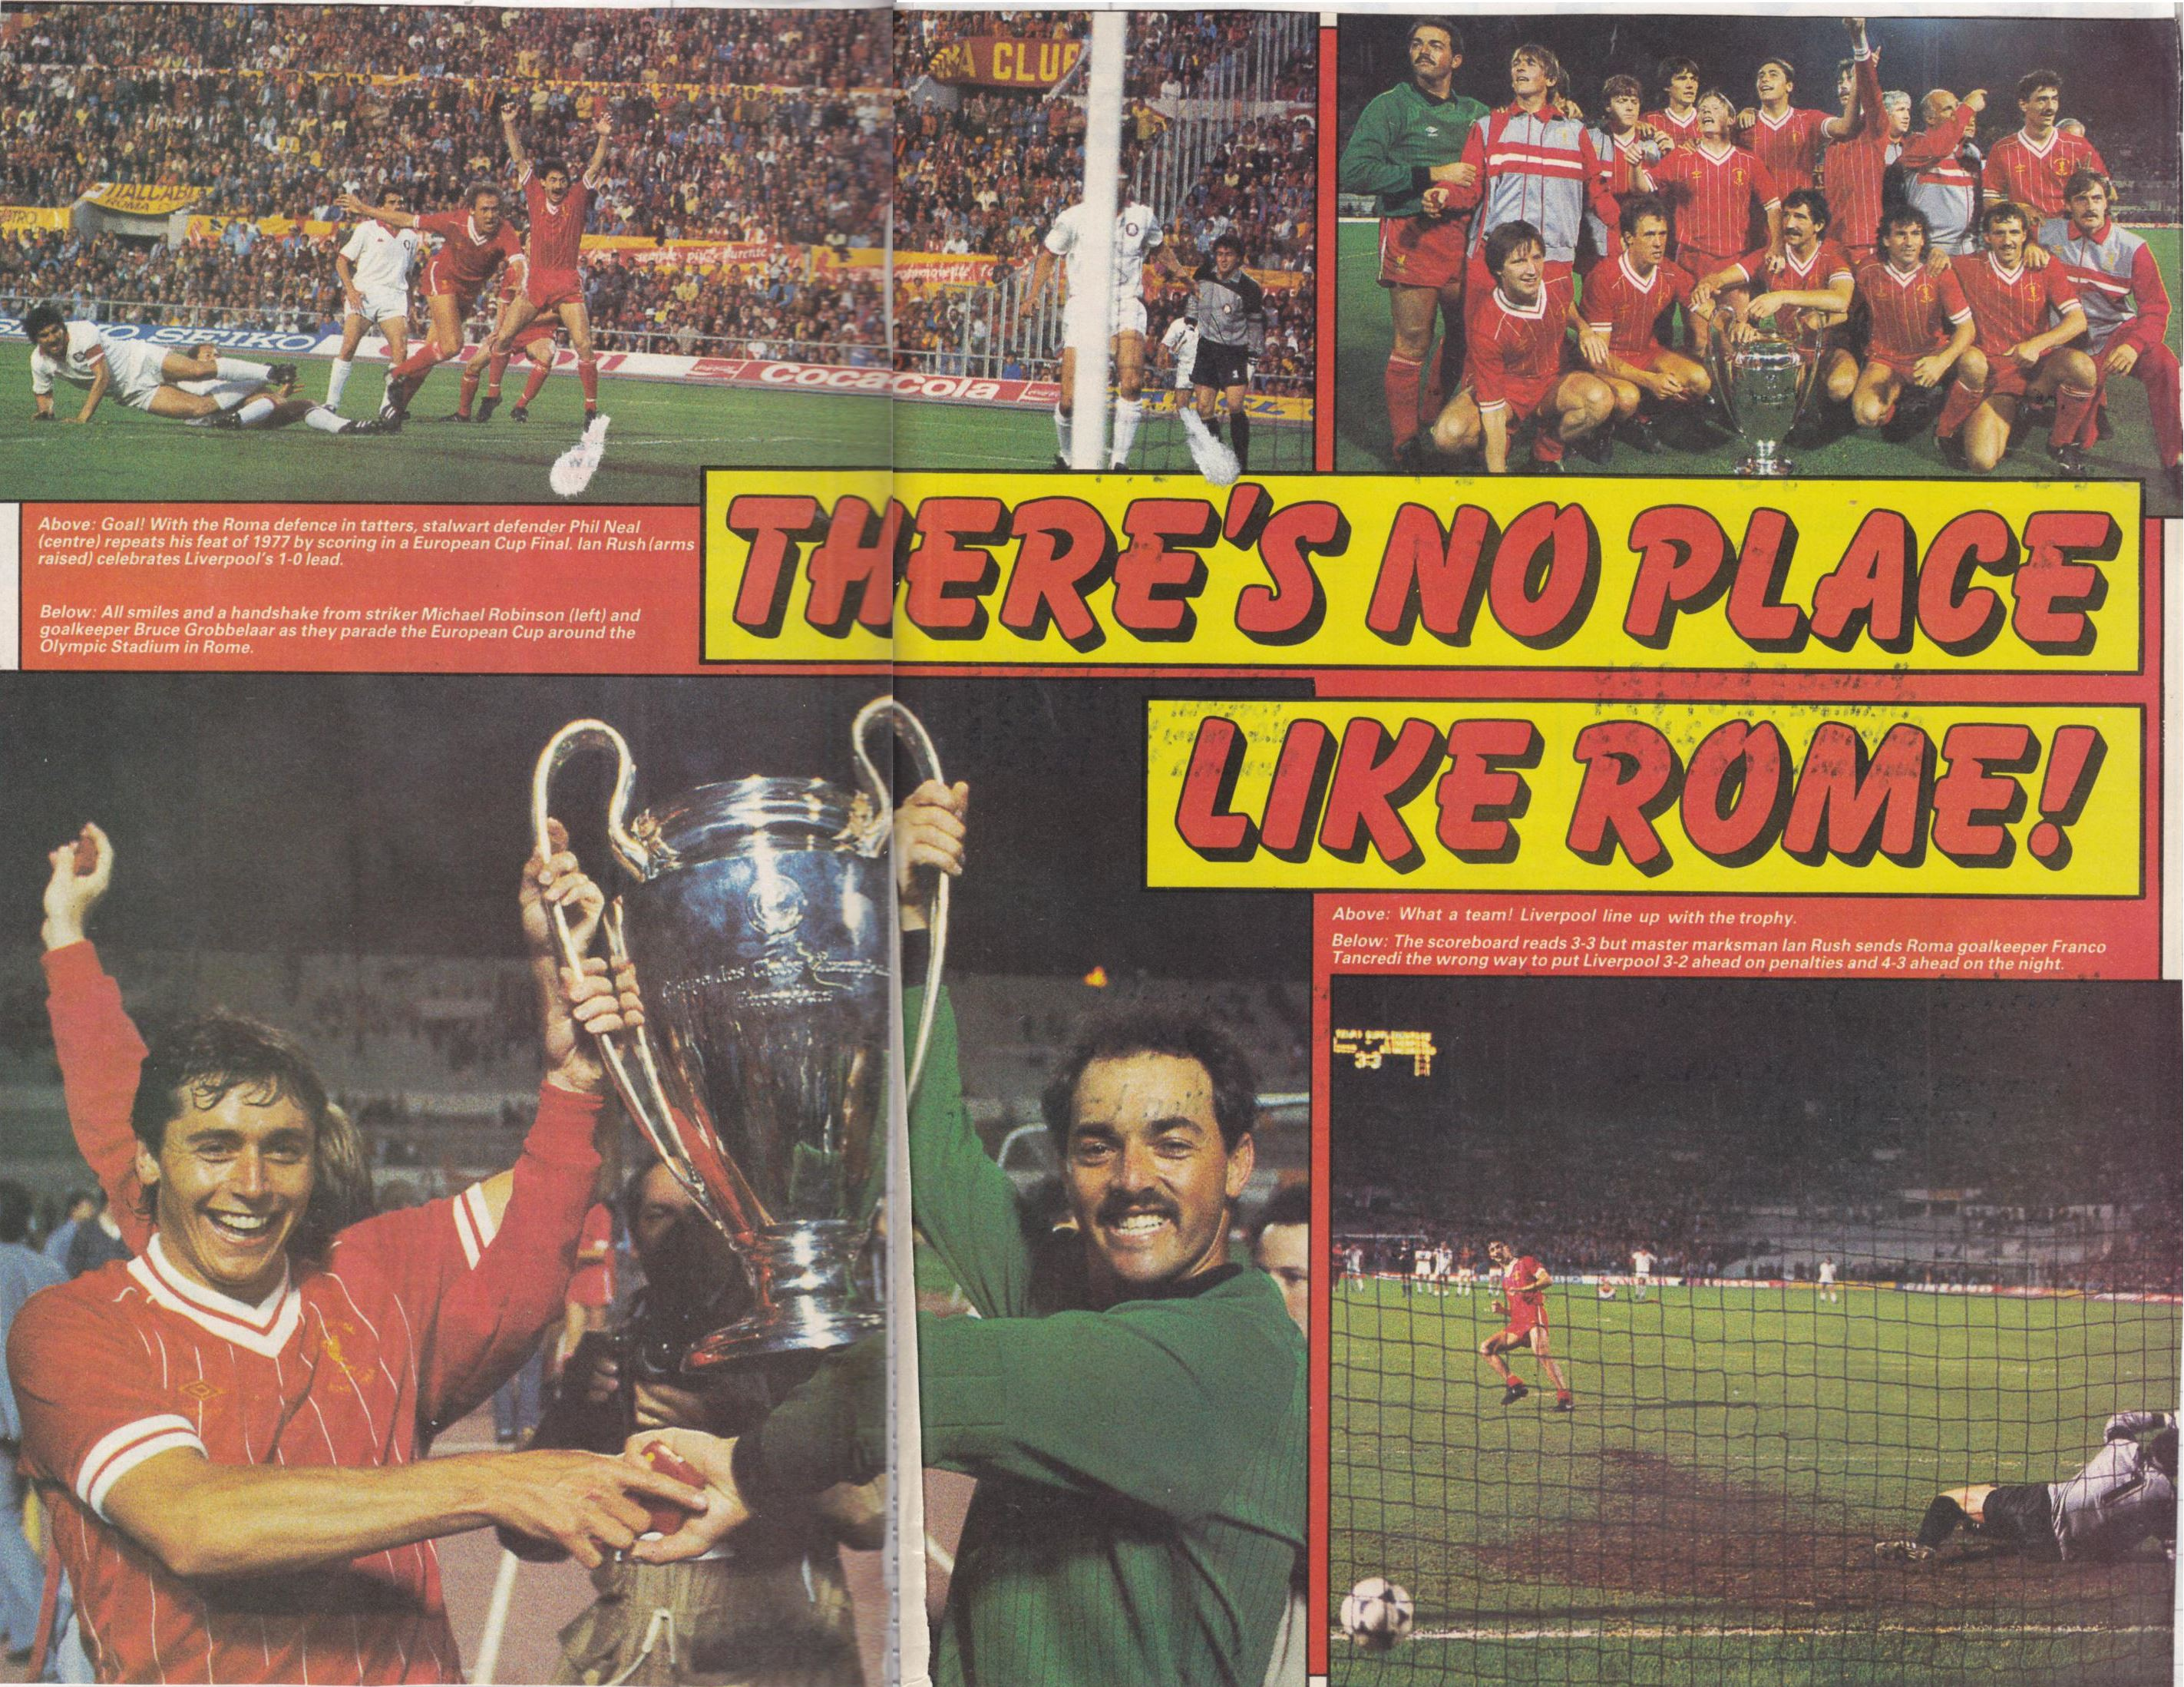 There's no place like Rome! - 1984